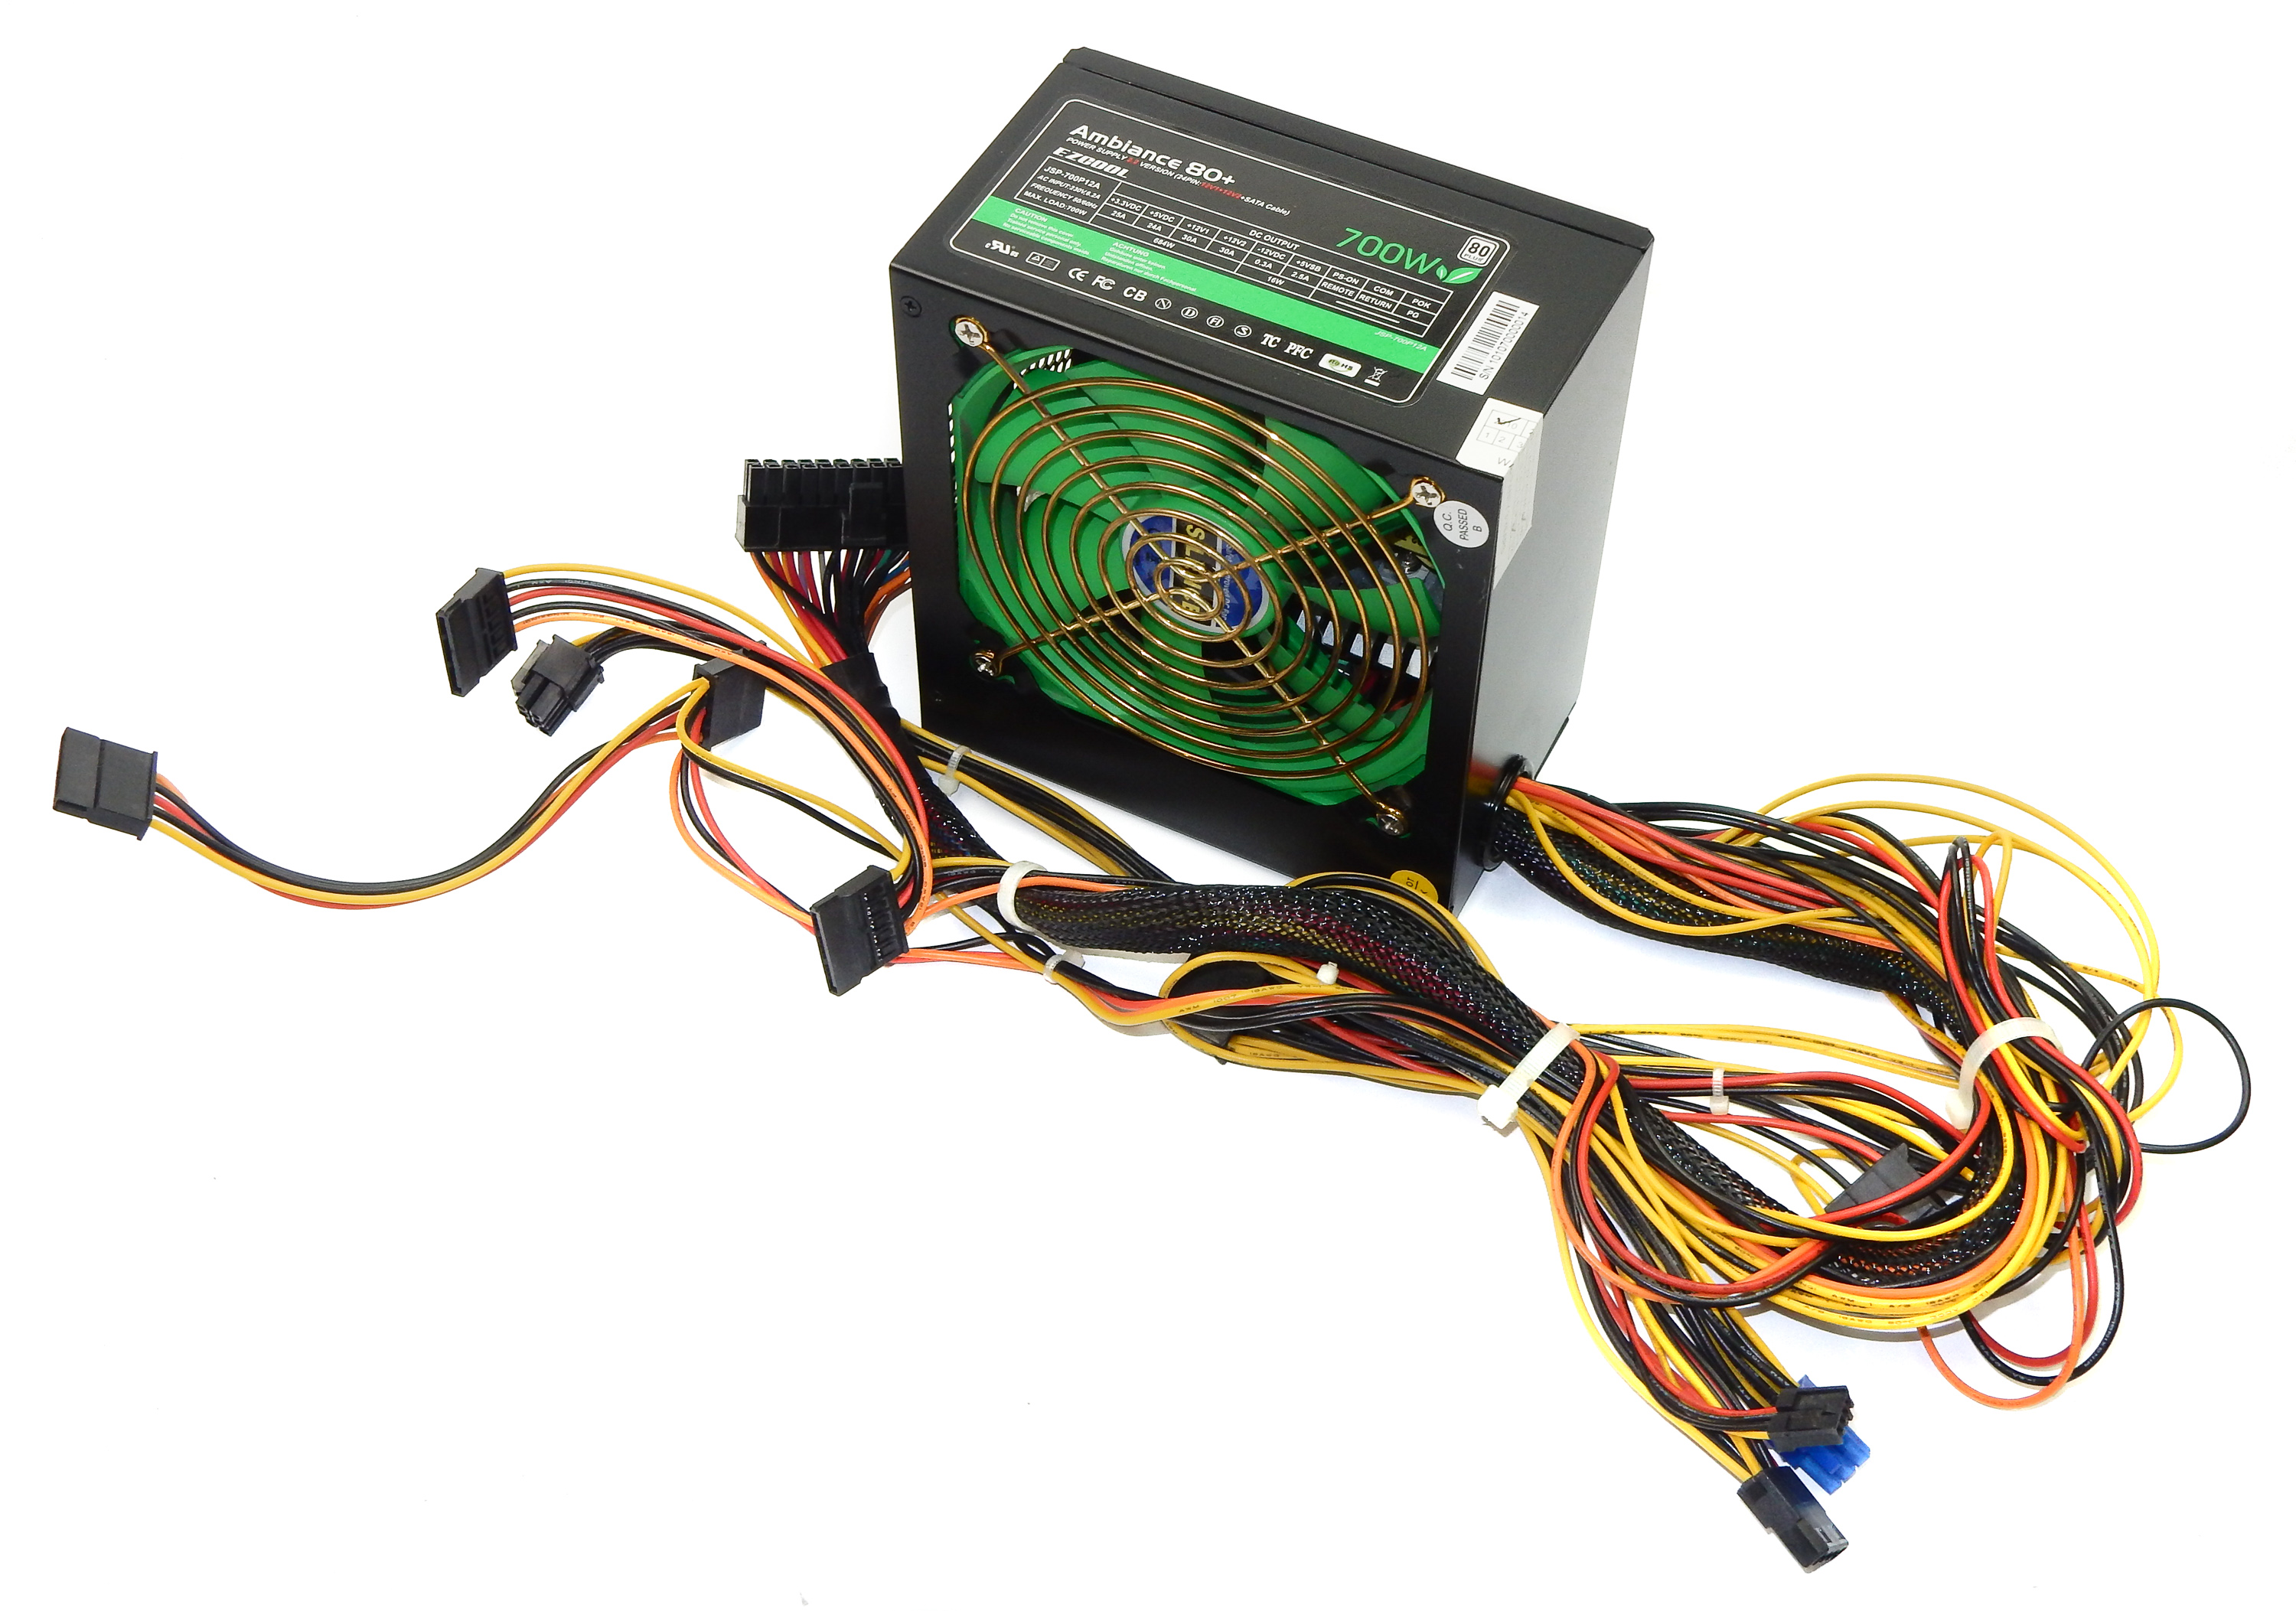 EZCOOL JSP-700P12A 20/24-Pin 700W Power Supply Unit